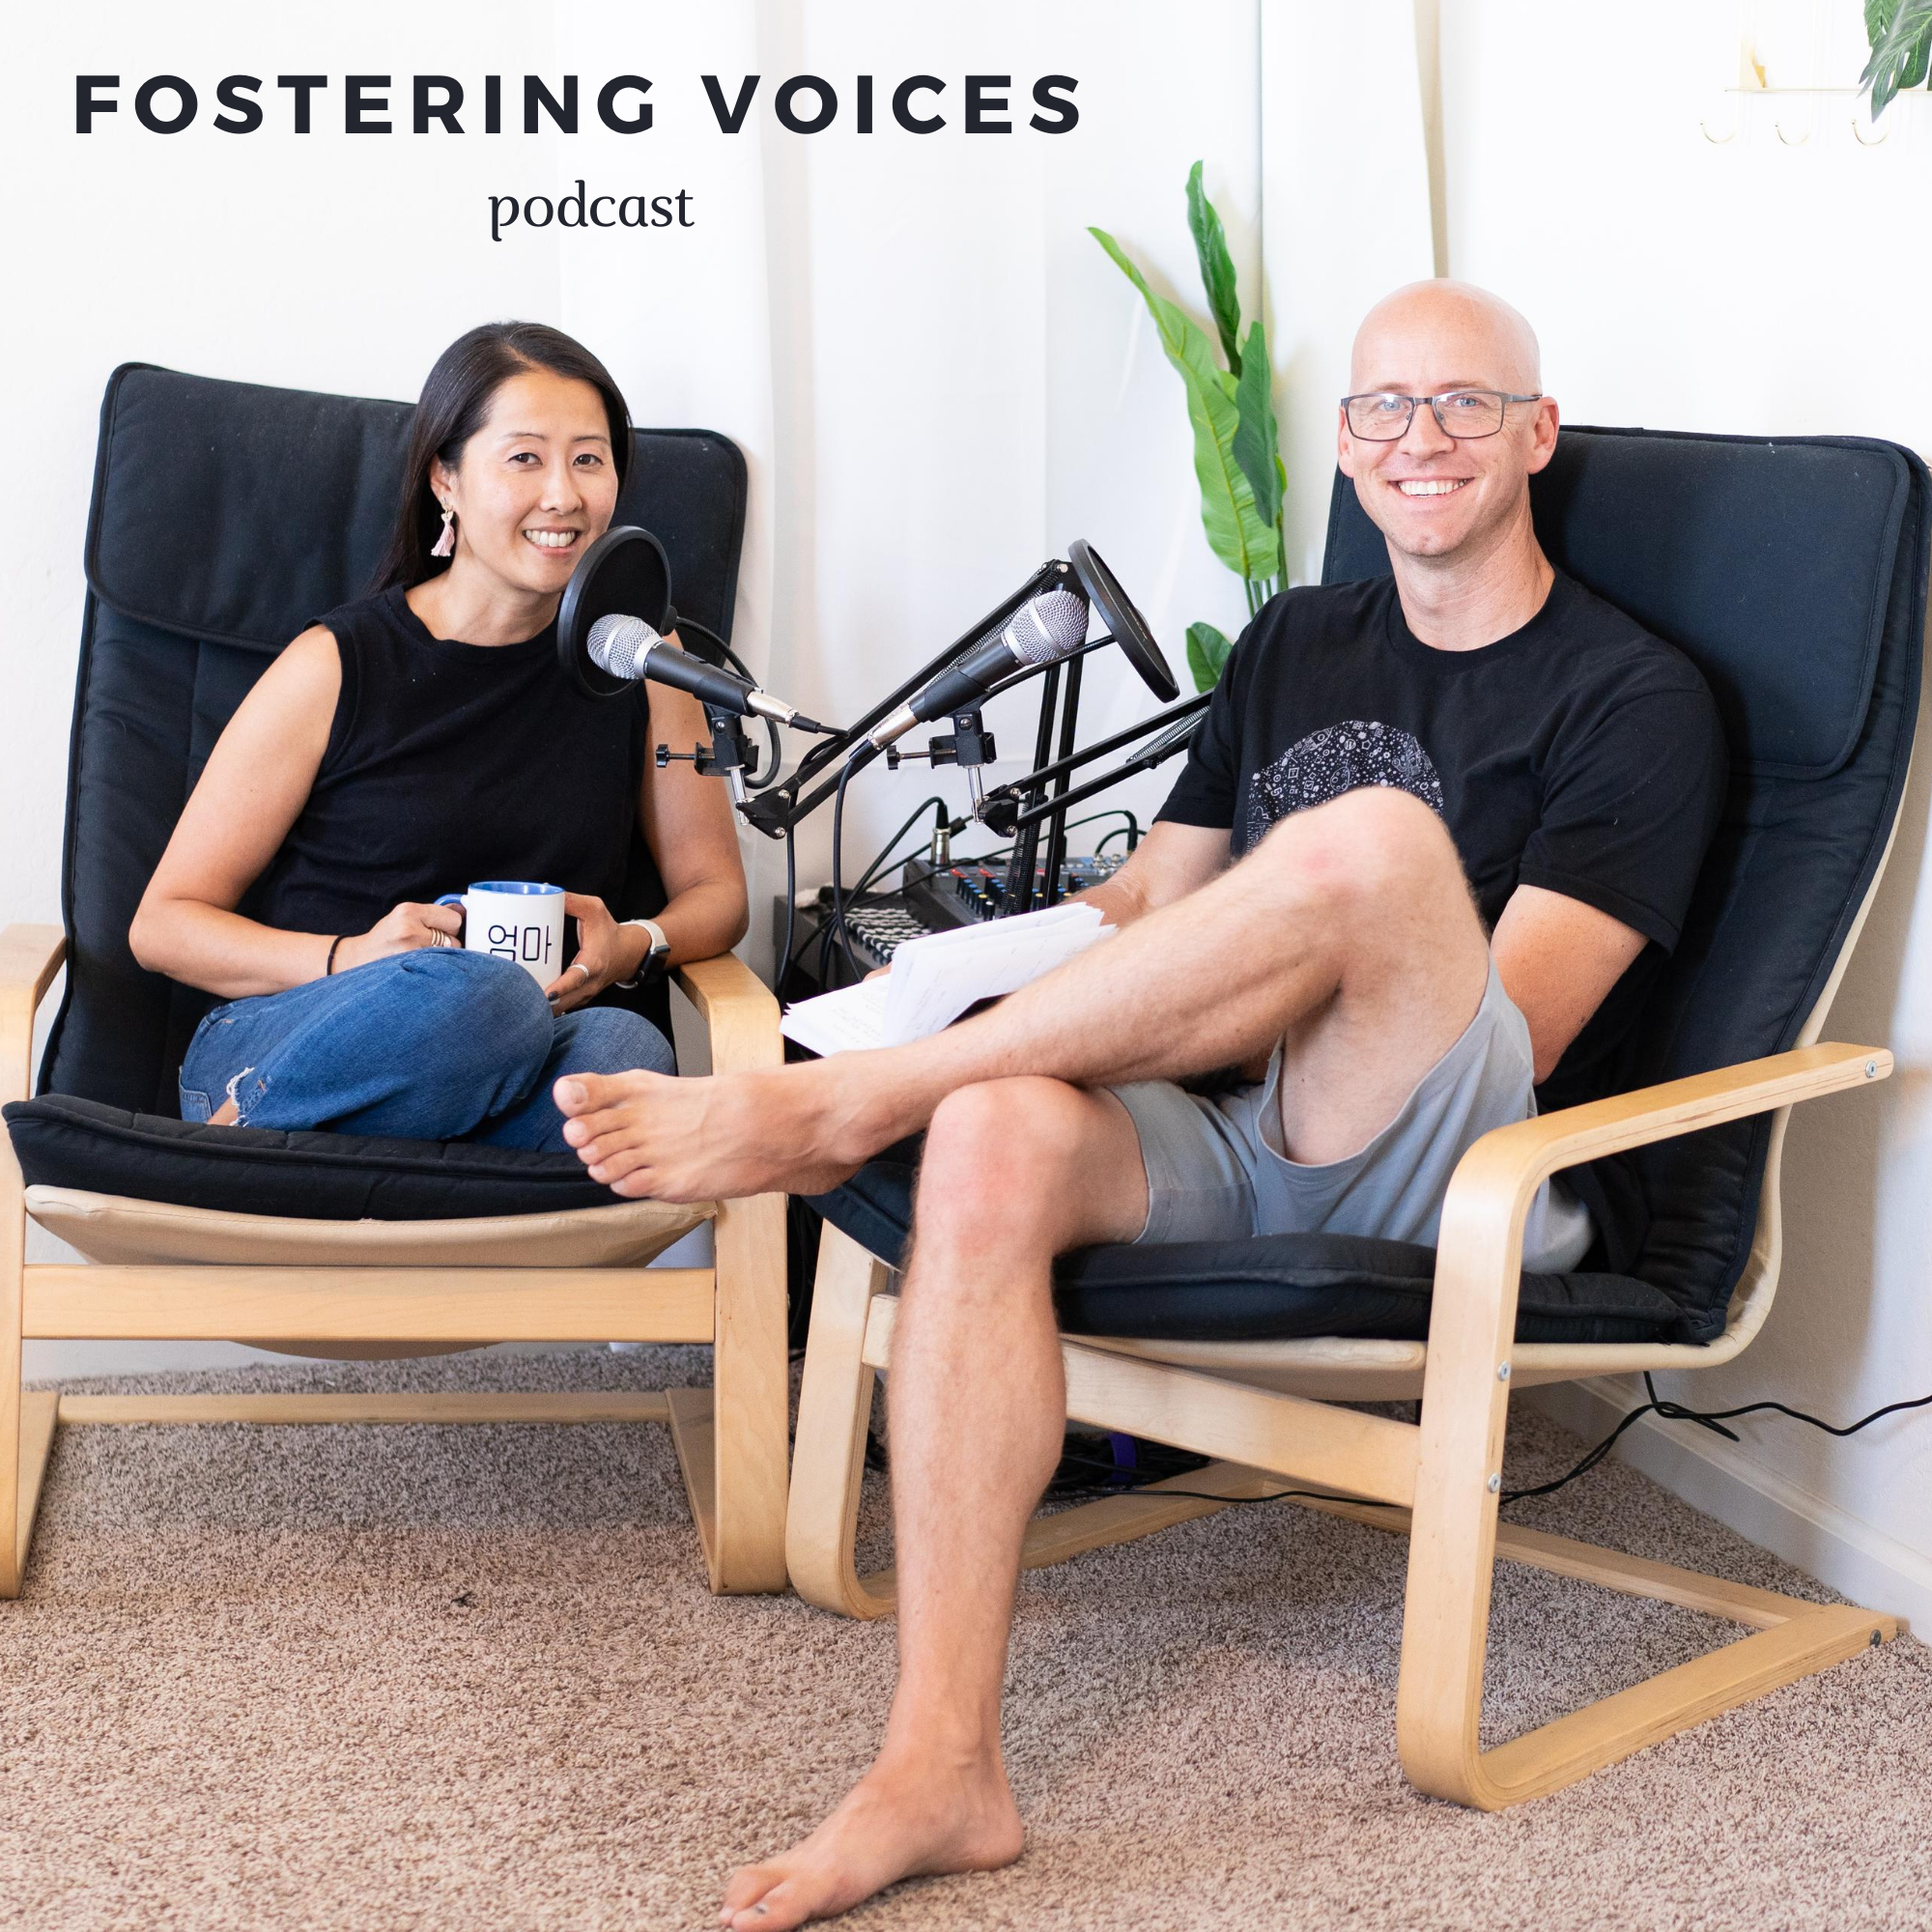 Episode 94: Get Licensed for Foster Care, Now! show art